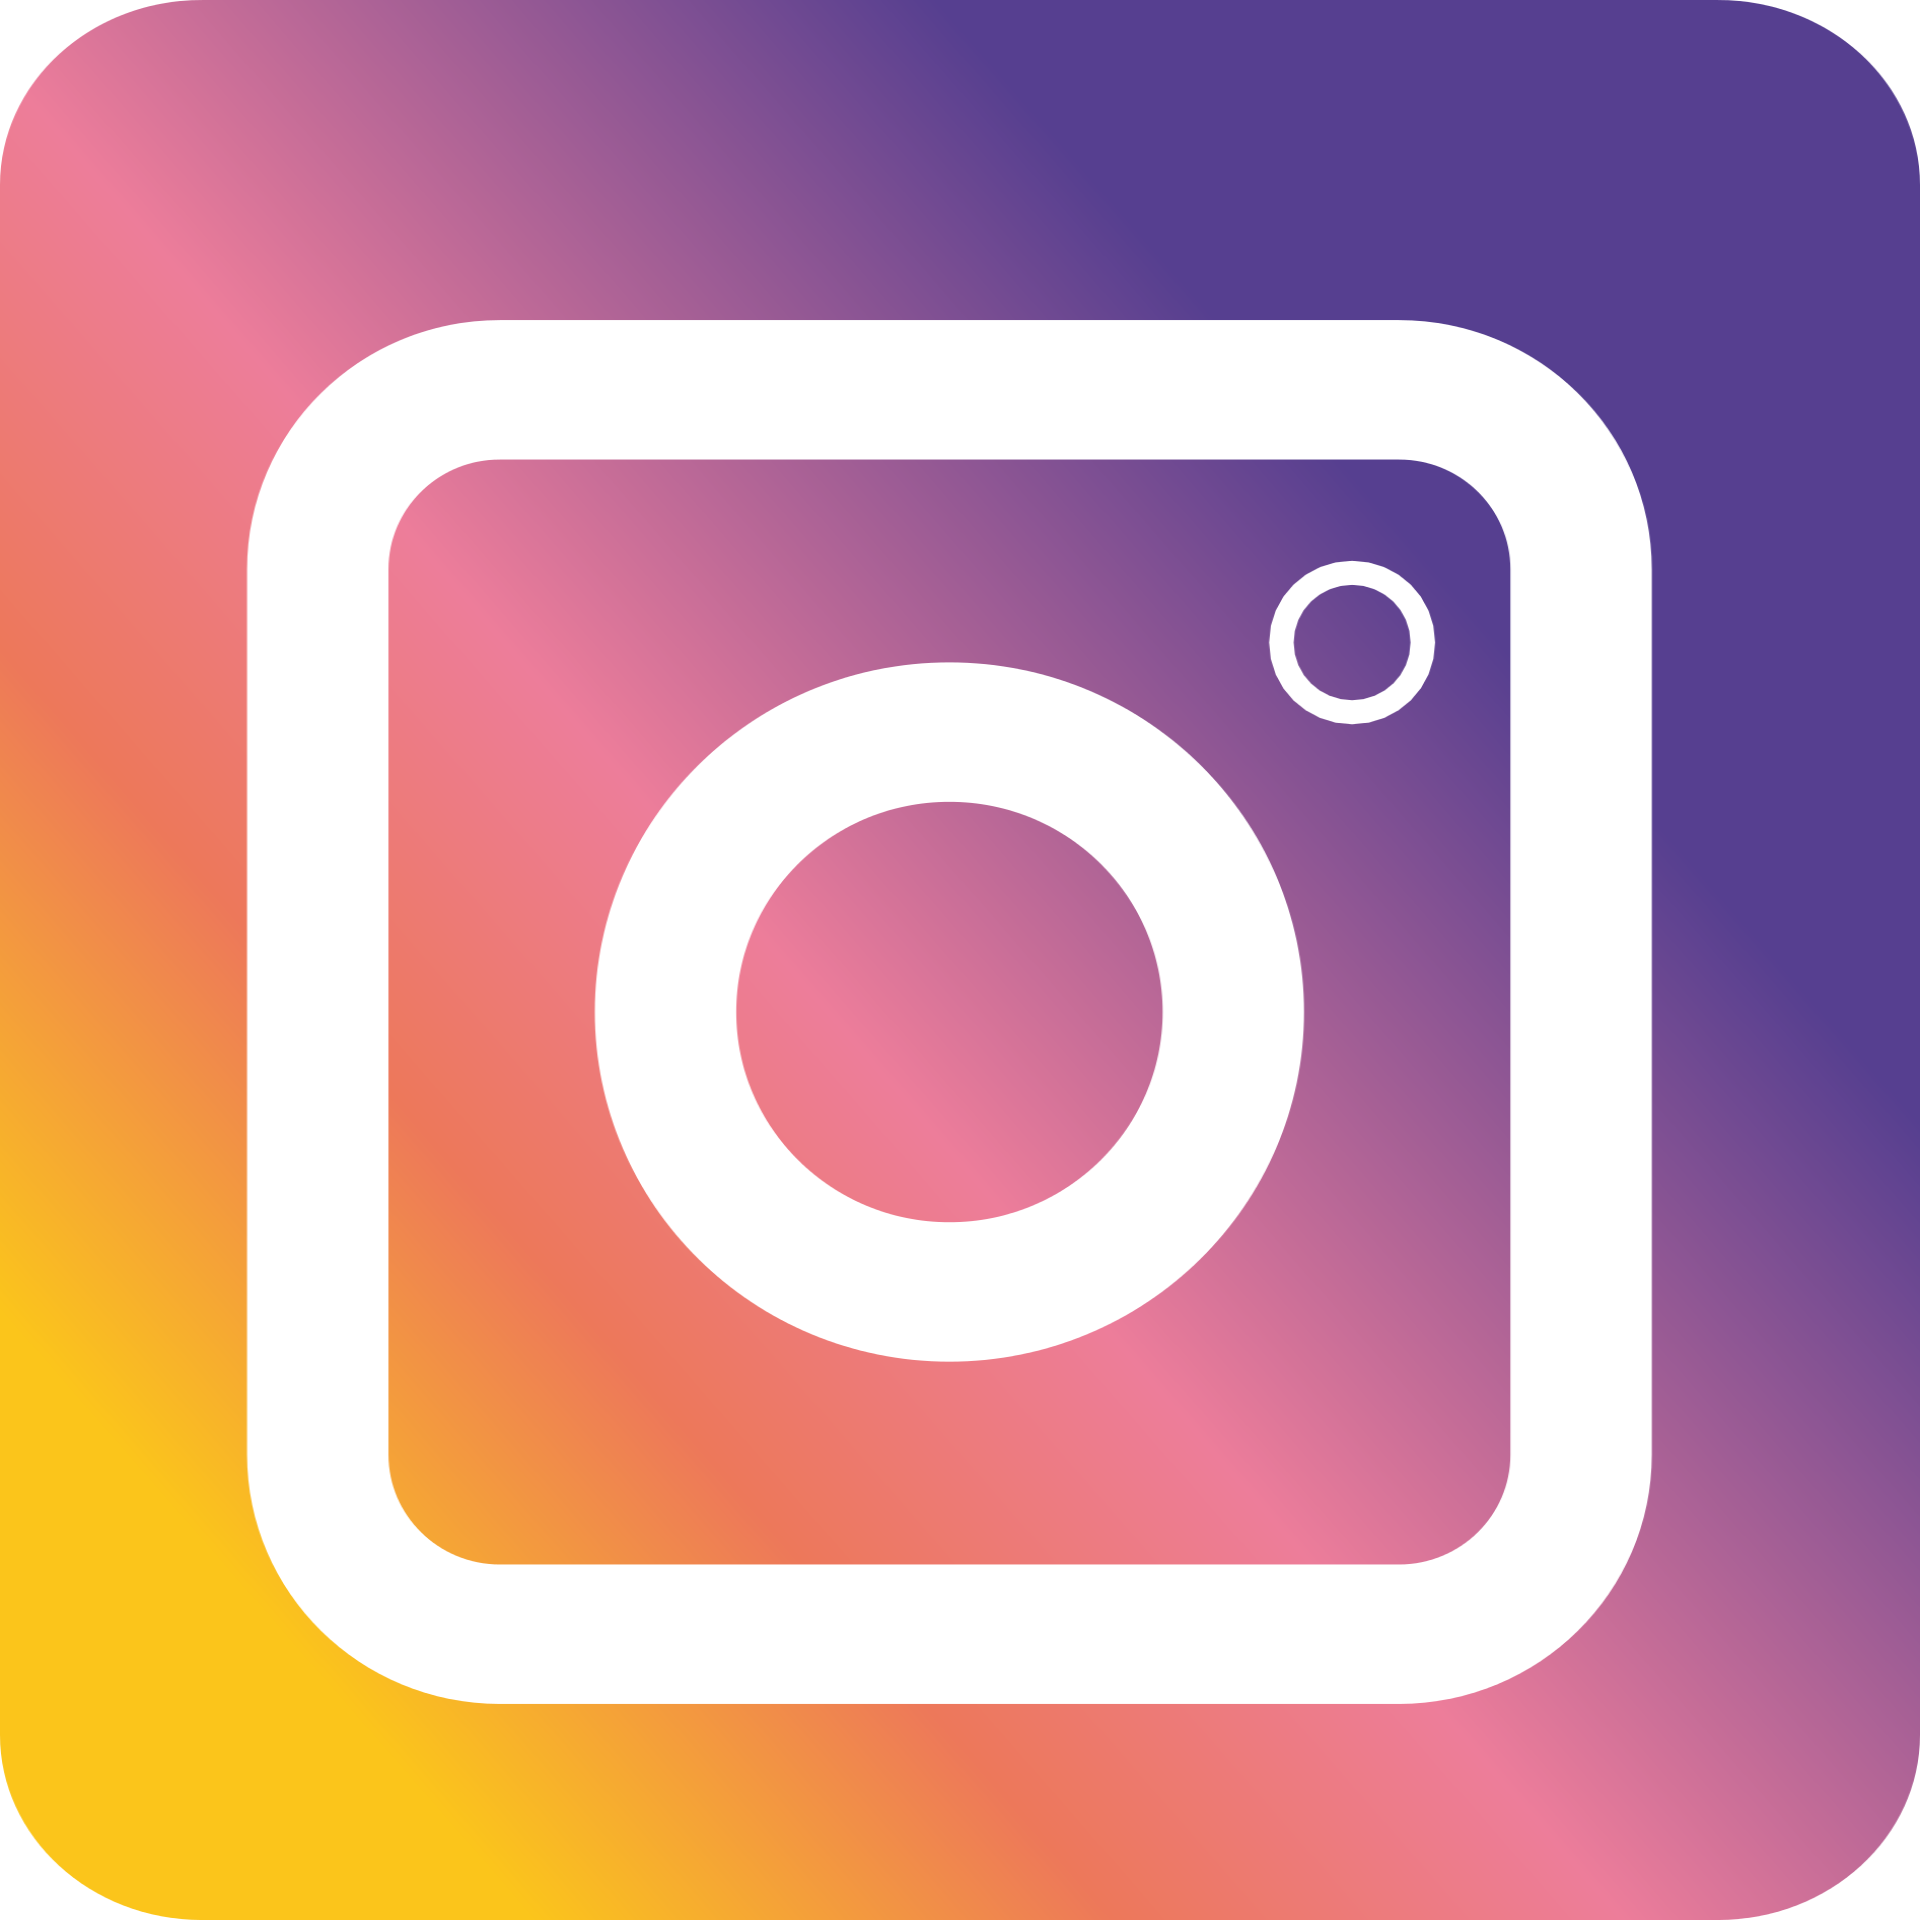 Instagram vs Snapchat: Which Platform Is a Better Fit for